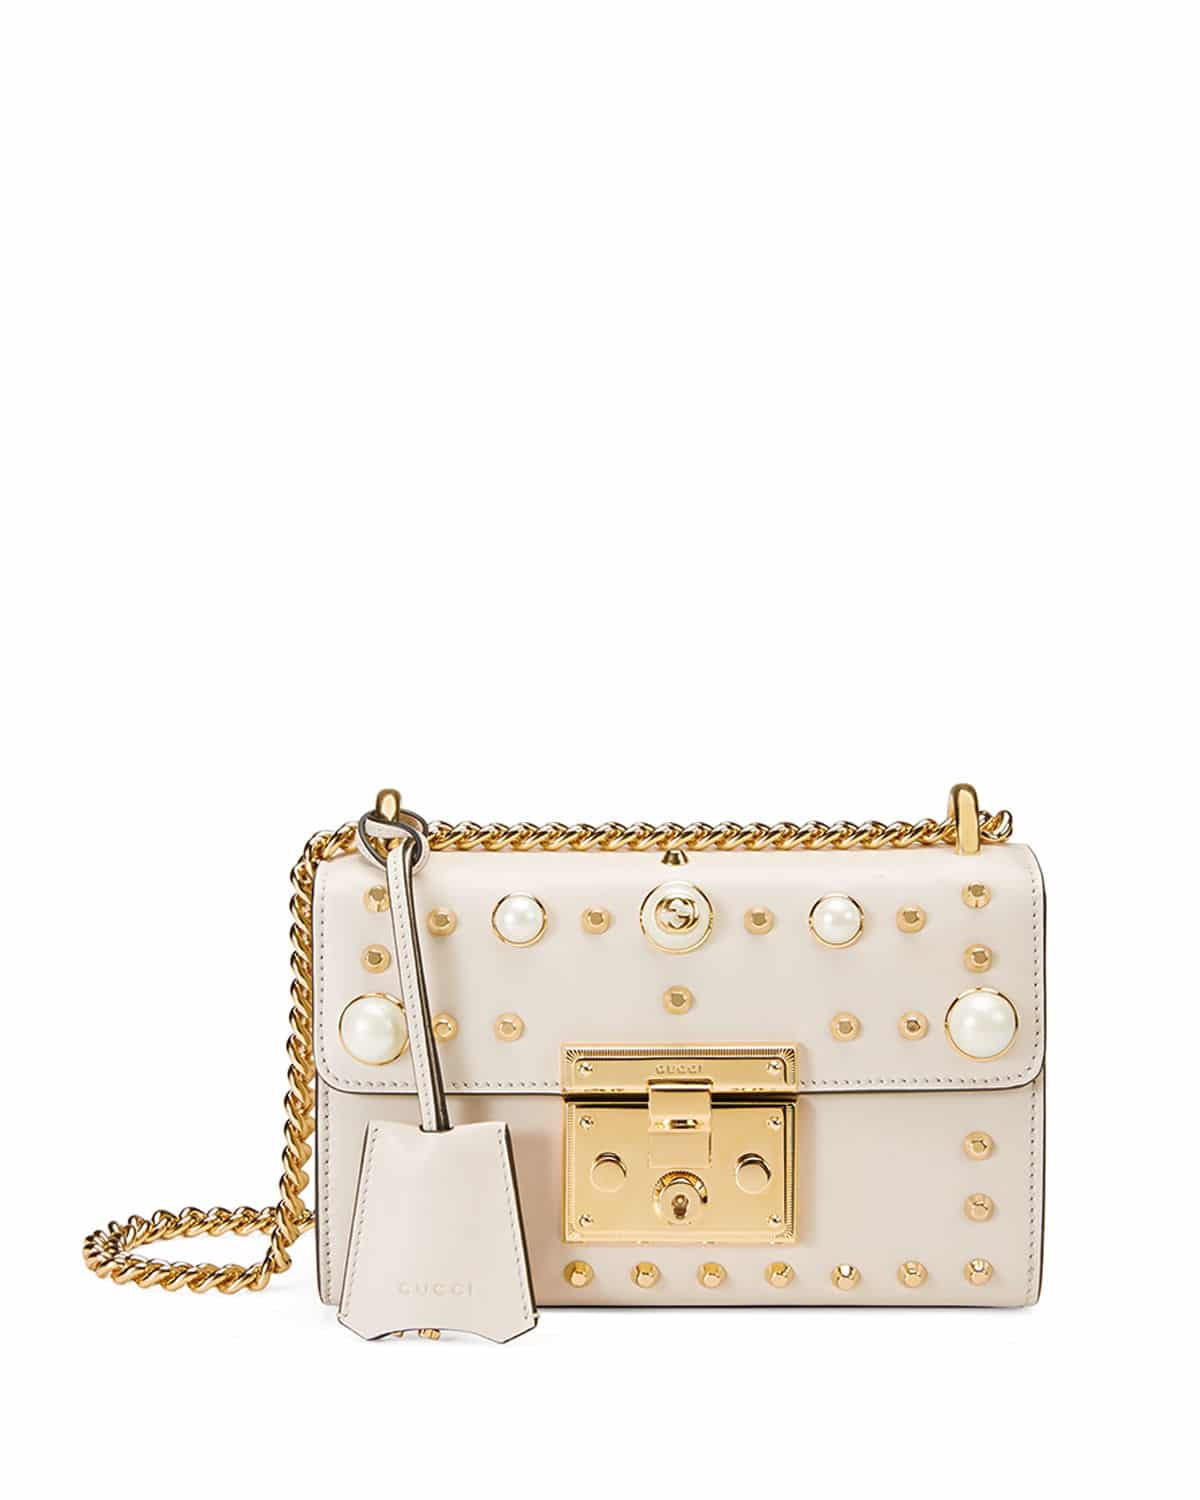 b7711d62280a Gucci White Padlock Small Studded Leather Shoulder Bag